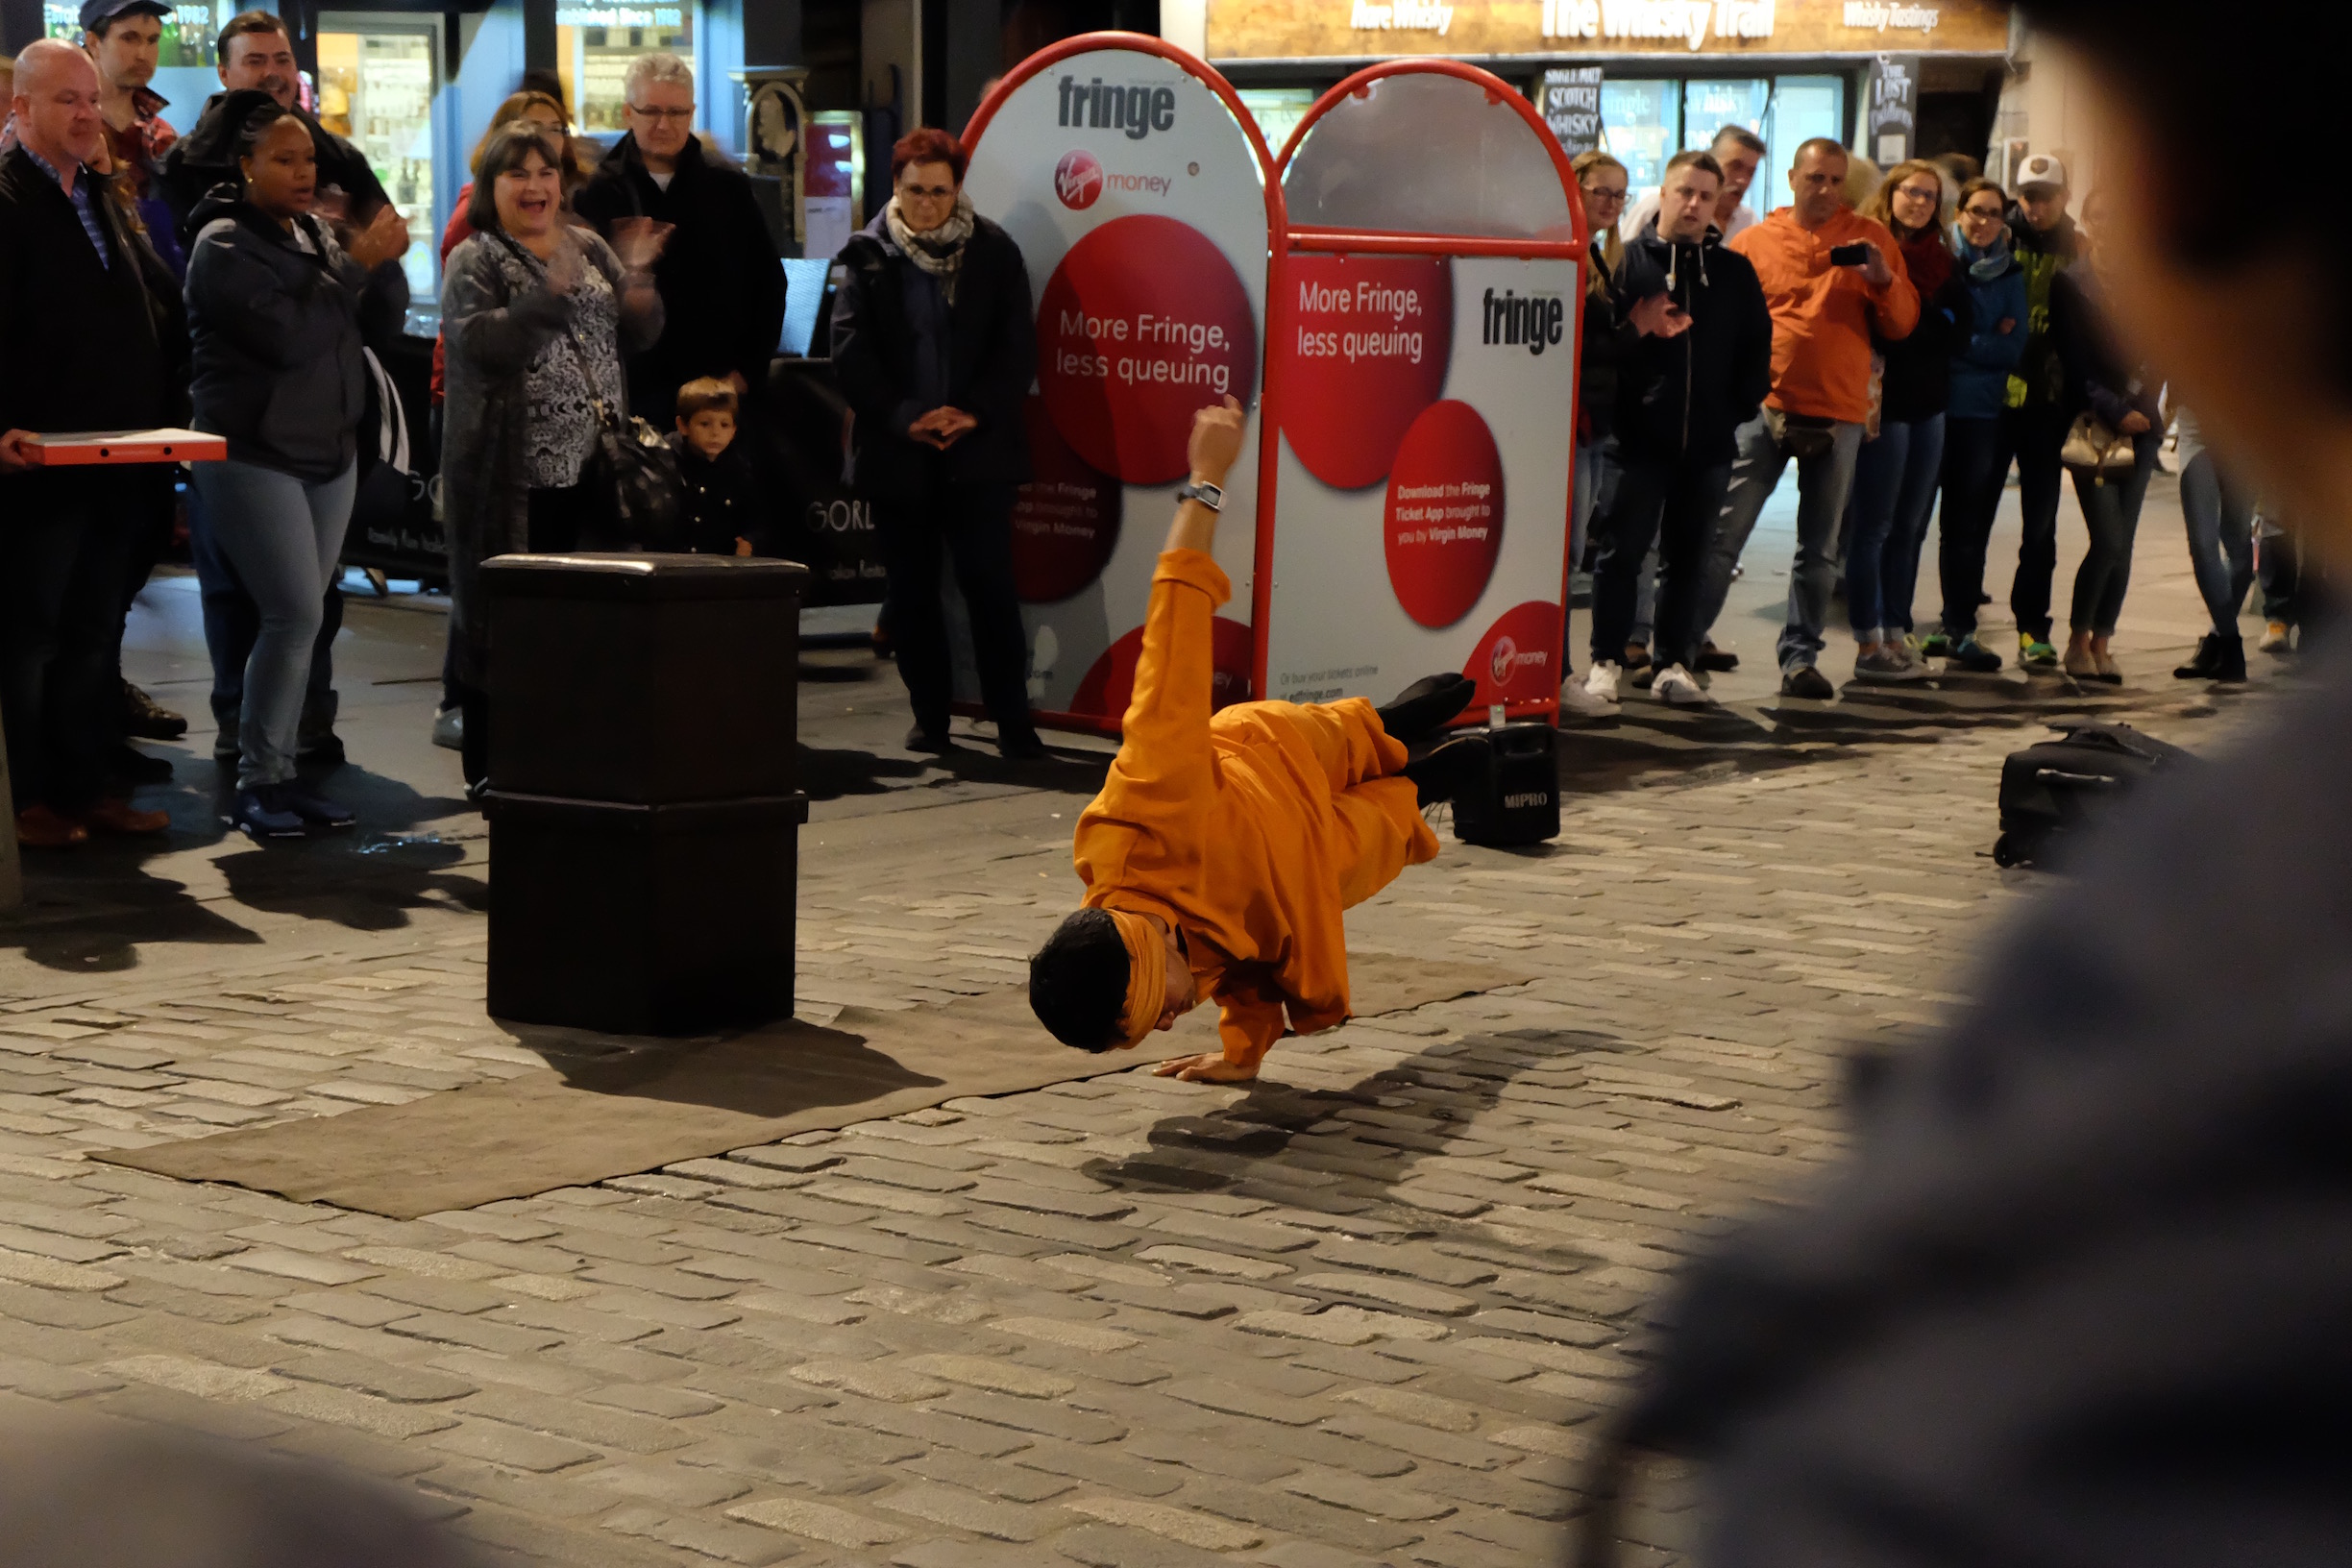 Street performer in Edinburgh